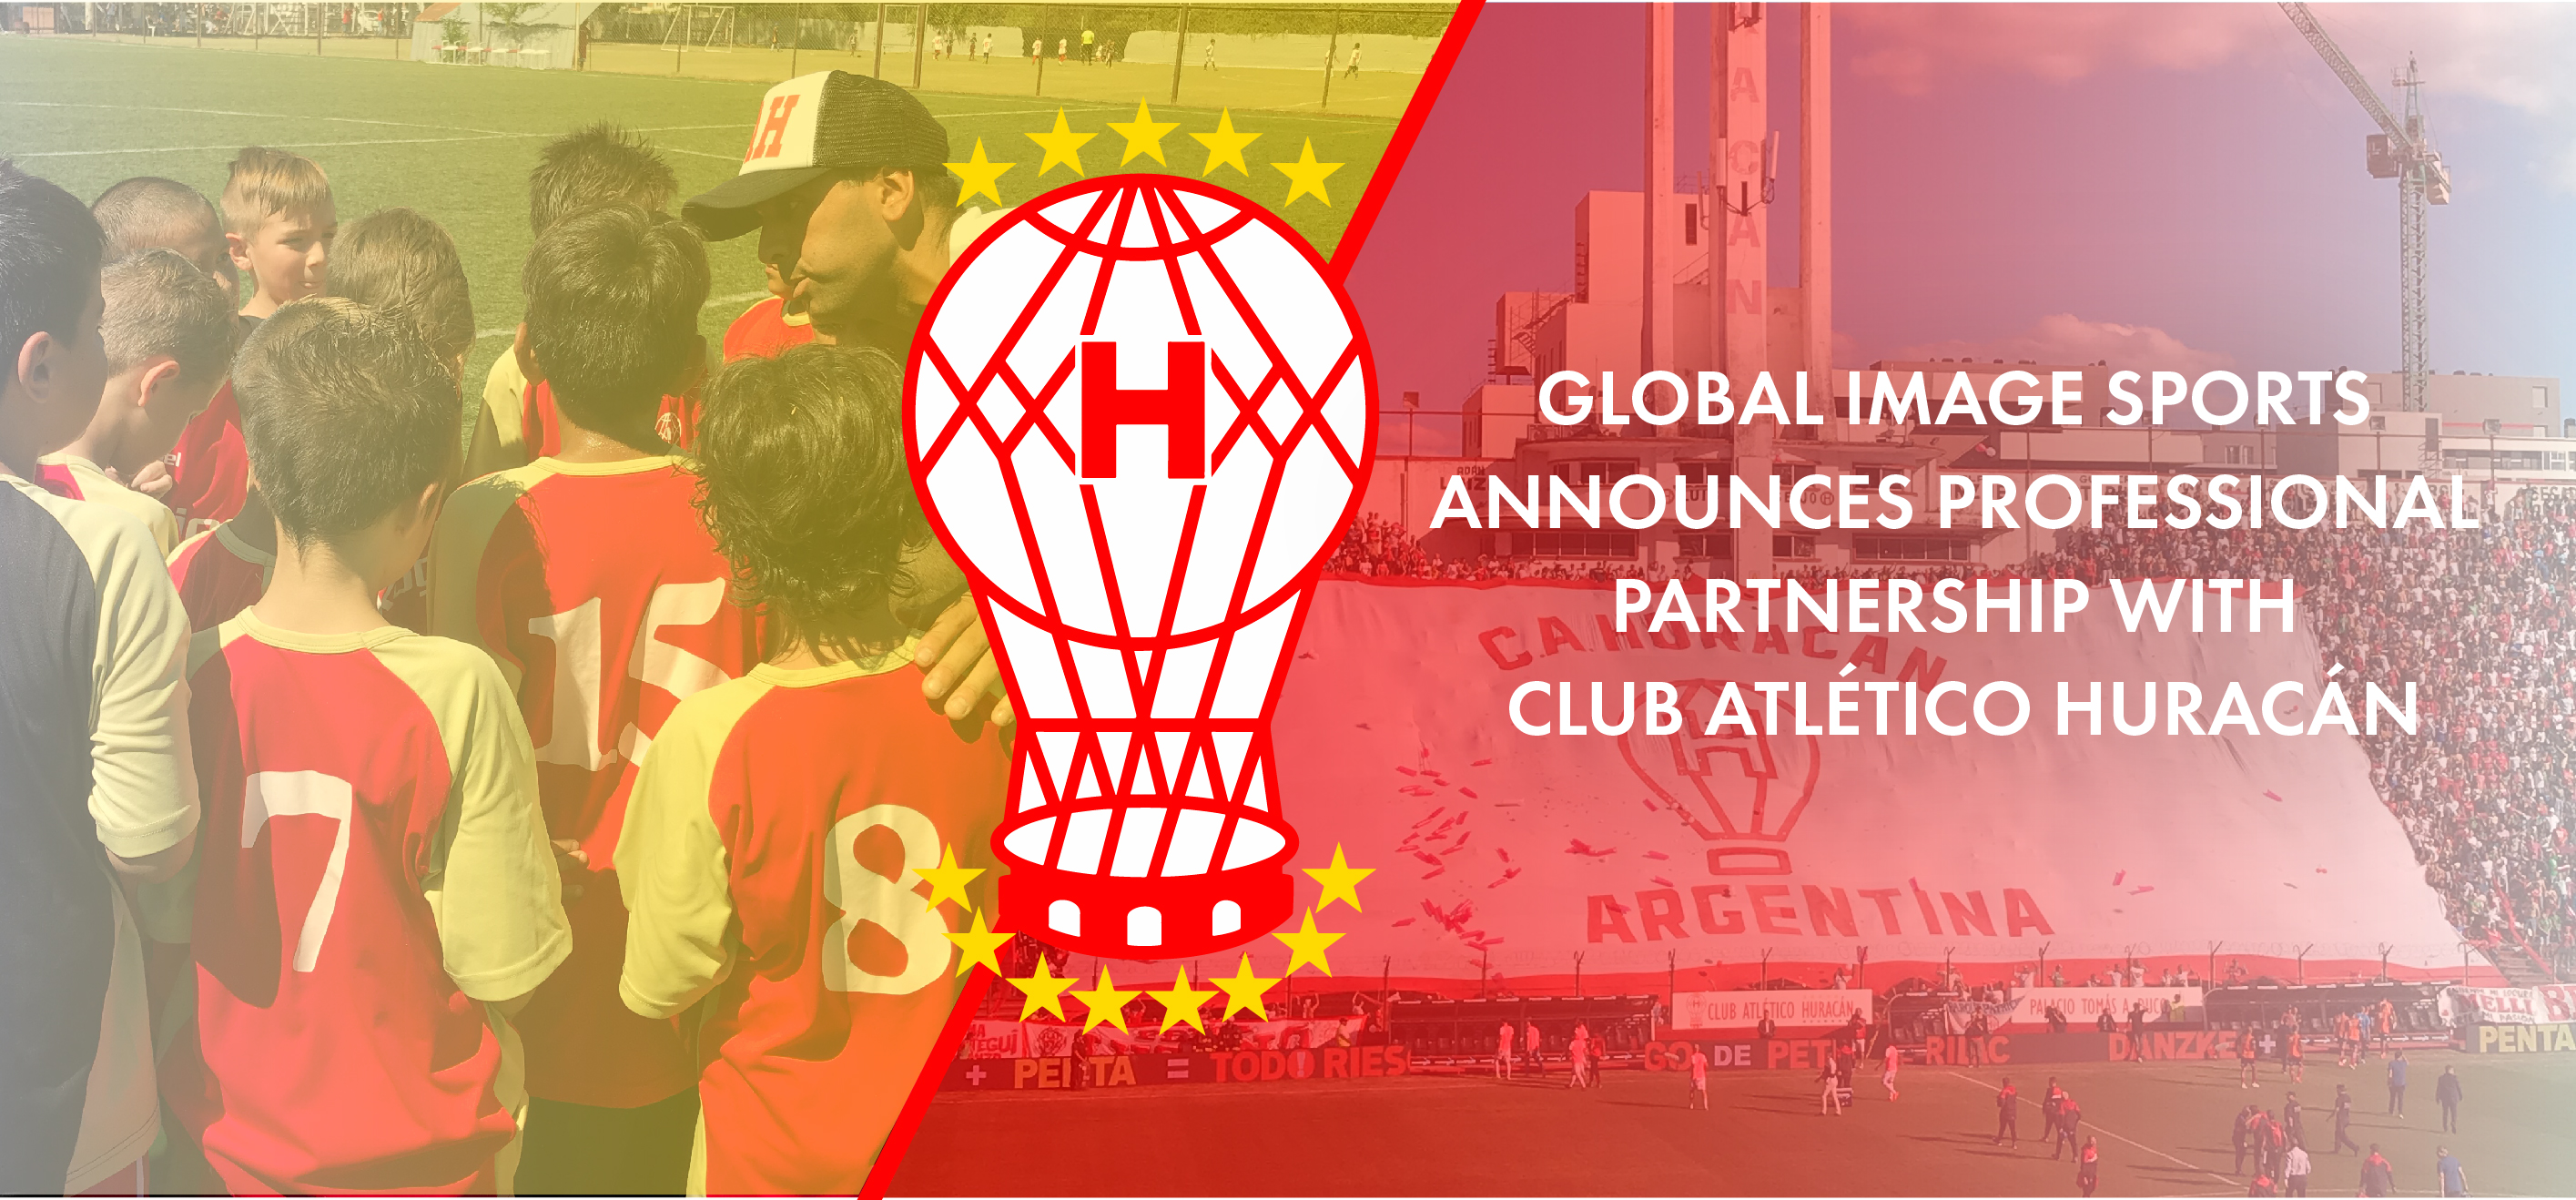 Global Image Sports announces Professional Partnership with Club Atlético Huracán